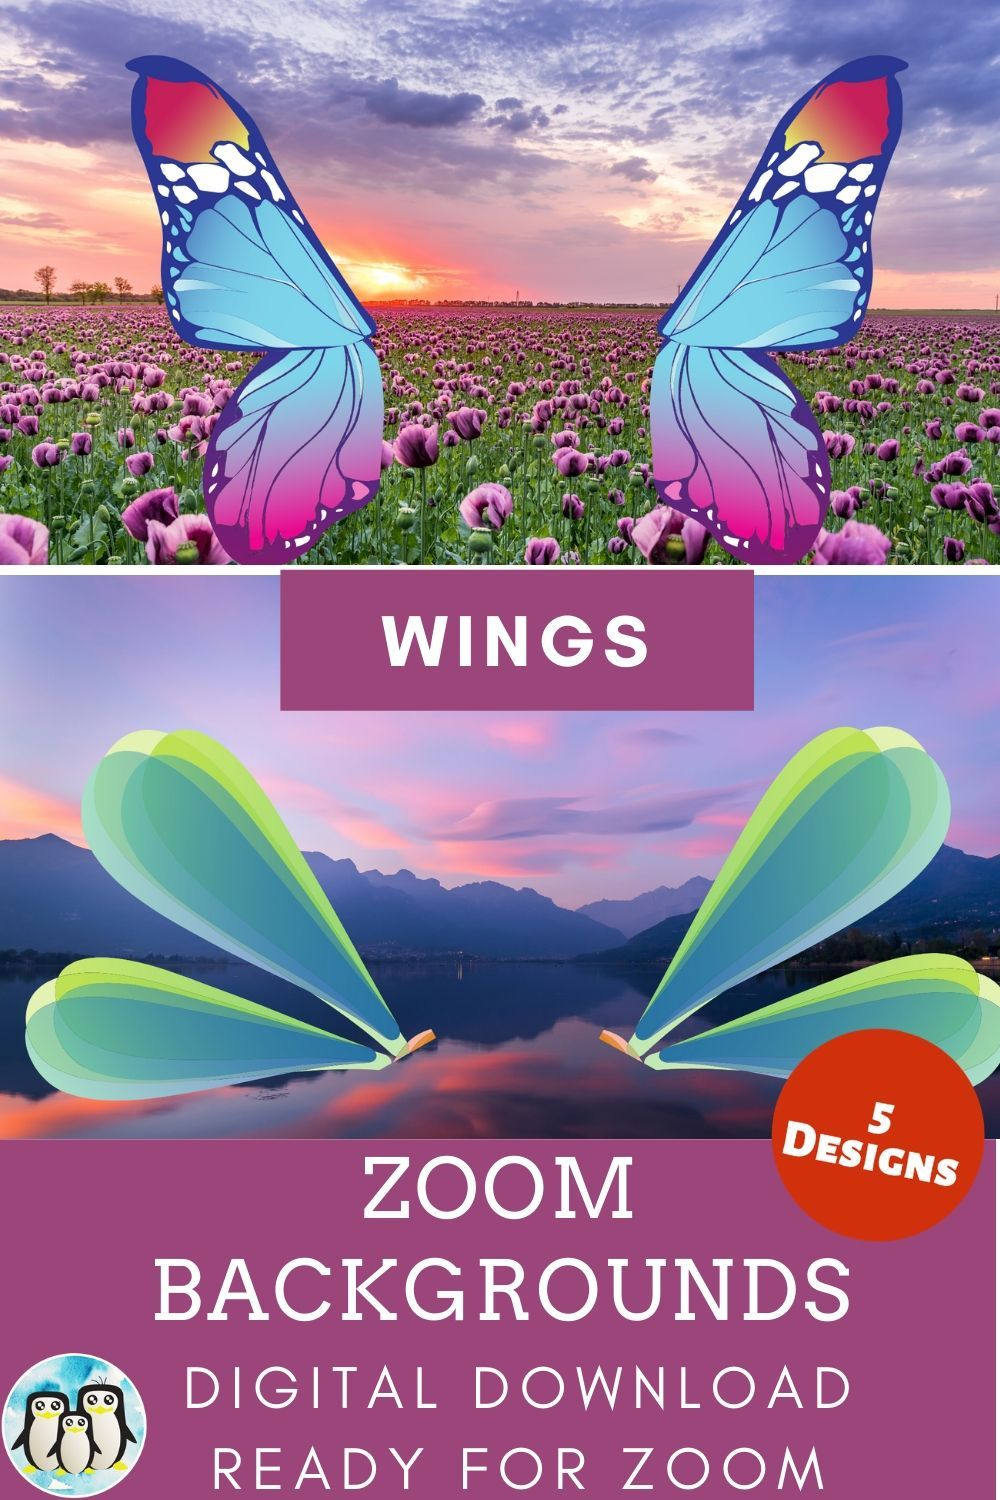 Zoom Virtual Background Bundle Of 5 Wings Inspired Designs Zoom Background Virtual Background Video Conference Backgrounds Cute Gifts For Friends Background Girls Birthday Party Themes